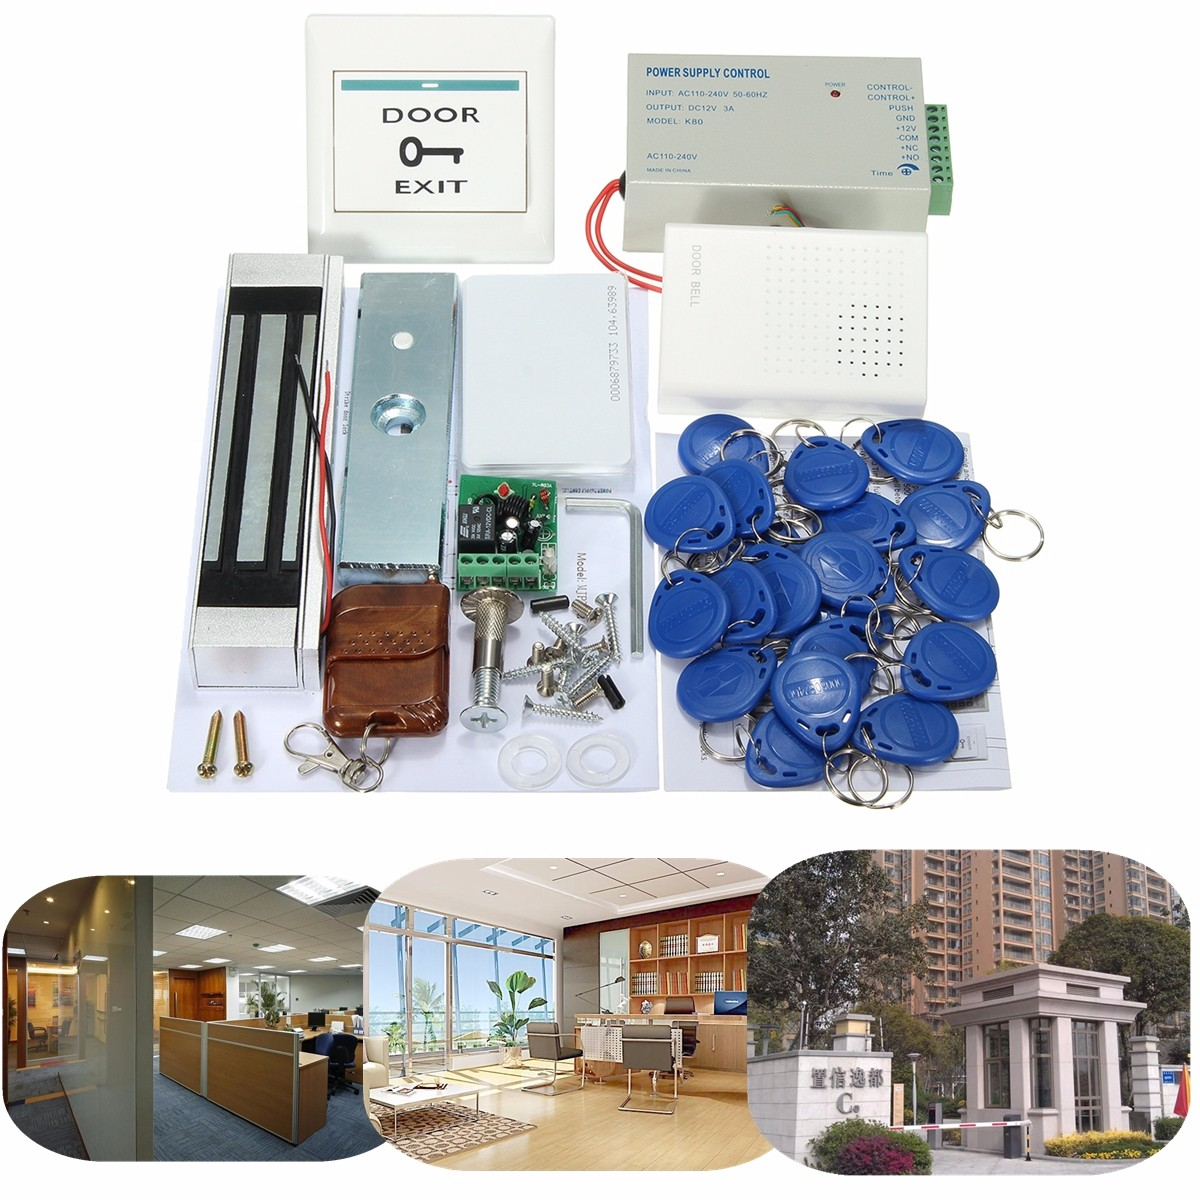 A Complete set of RFID Door Access Control System Kit Set With Lock RFID+power+magnetic lock+door exit+keys free shipping free shipping 3000 users complete access control system kit set with electric bolt lock keypad power remote door bell exit keys